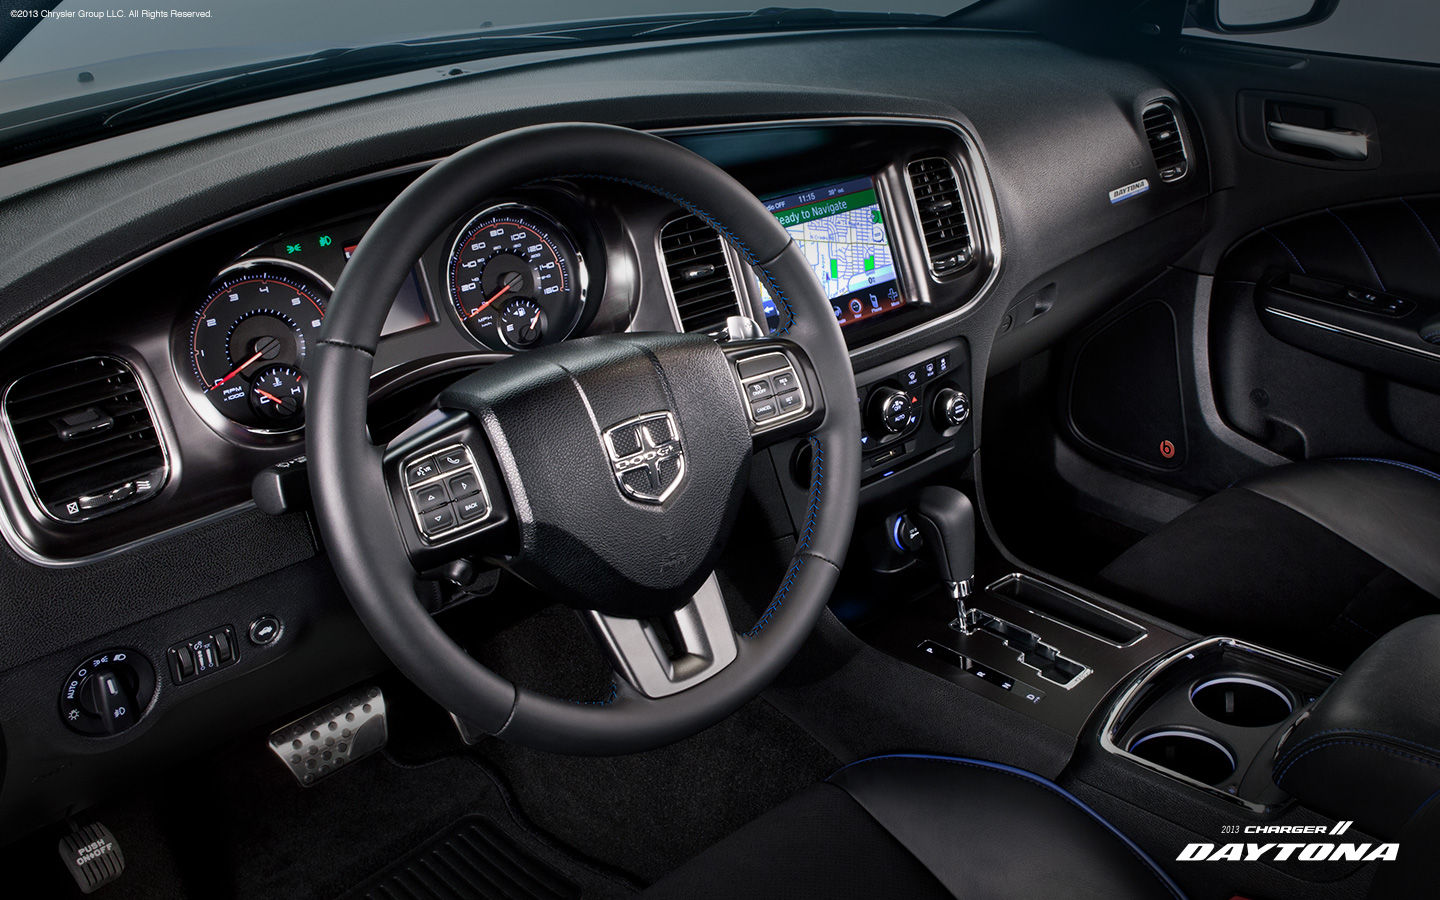 Dodge Charger 2013 Interior